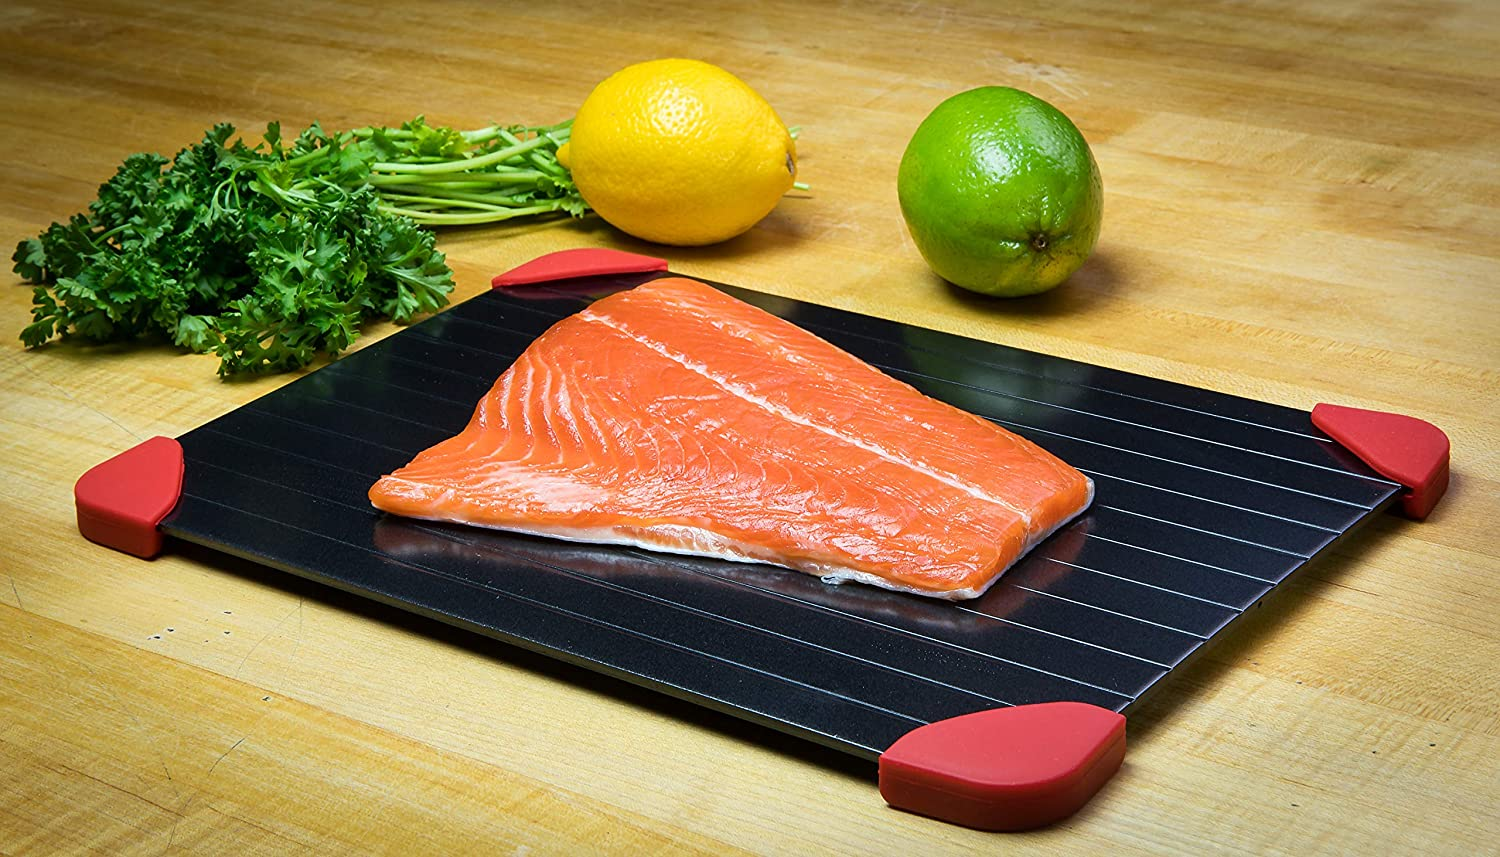 FranCo Rapid Defrost Tray. Safe Natural Way to Defrost Food With No Electricity or Hot Water.